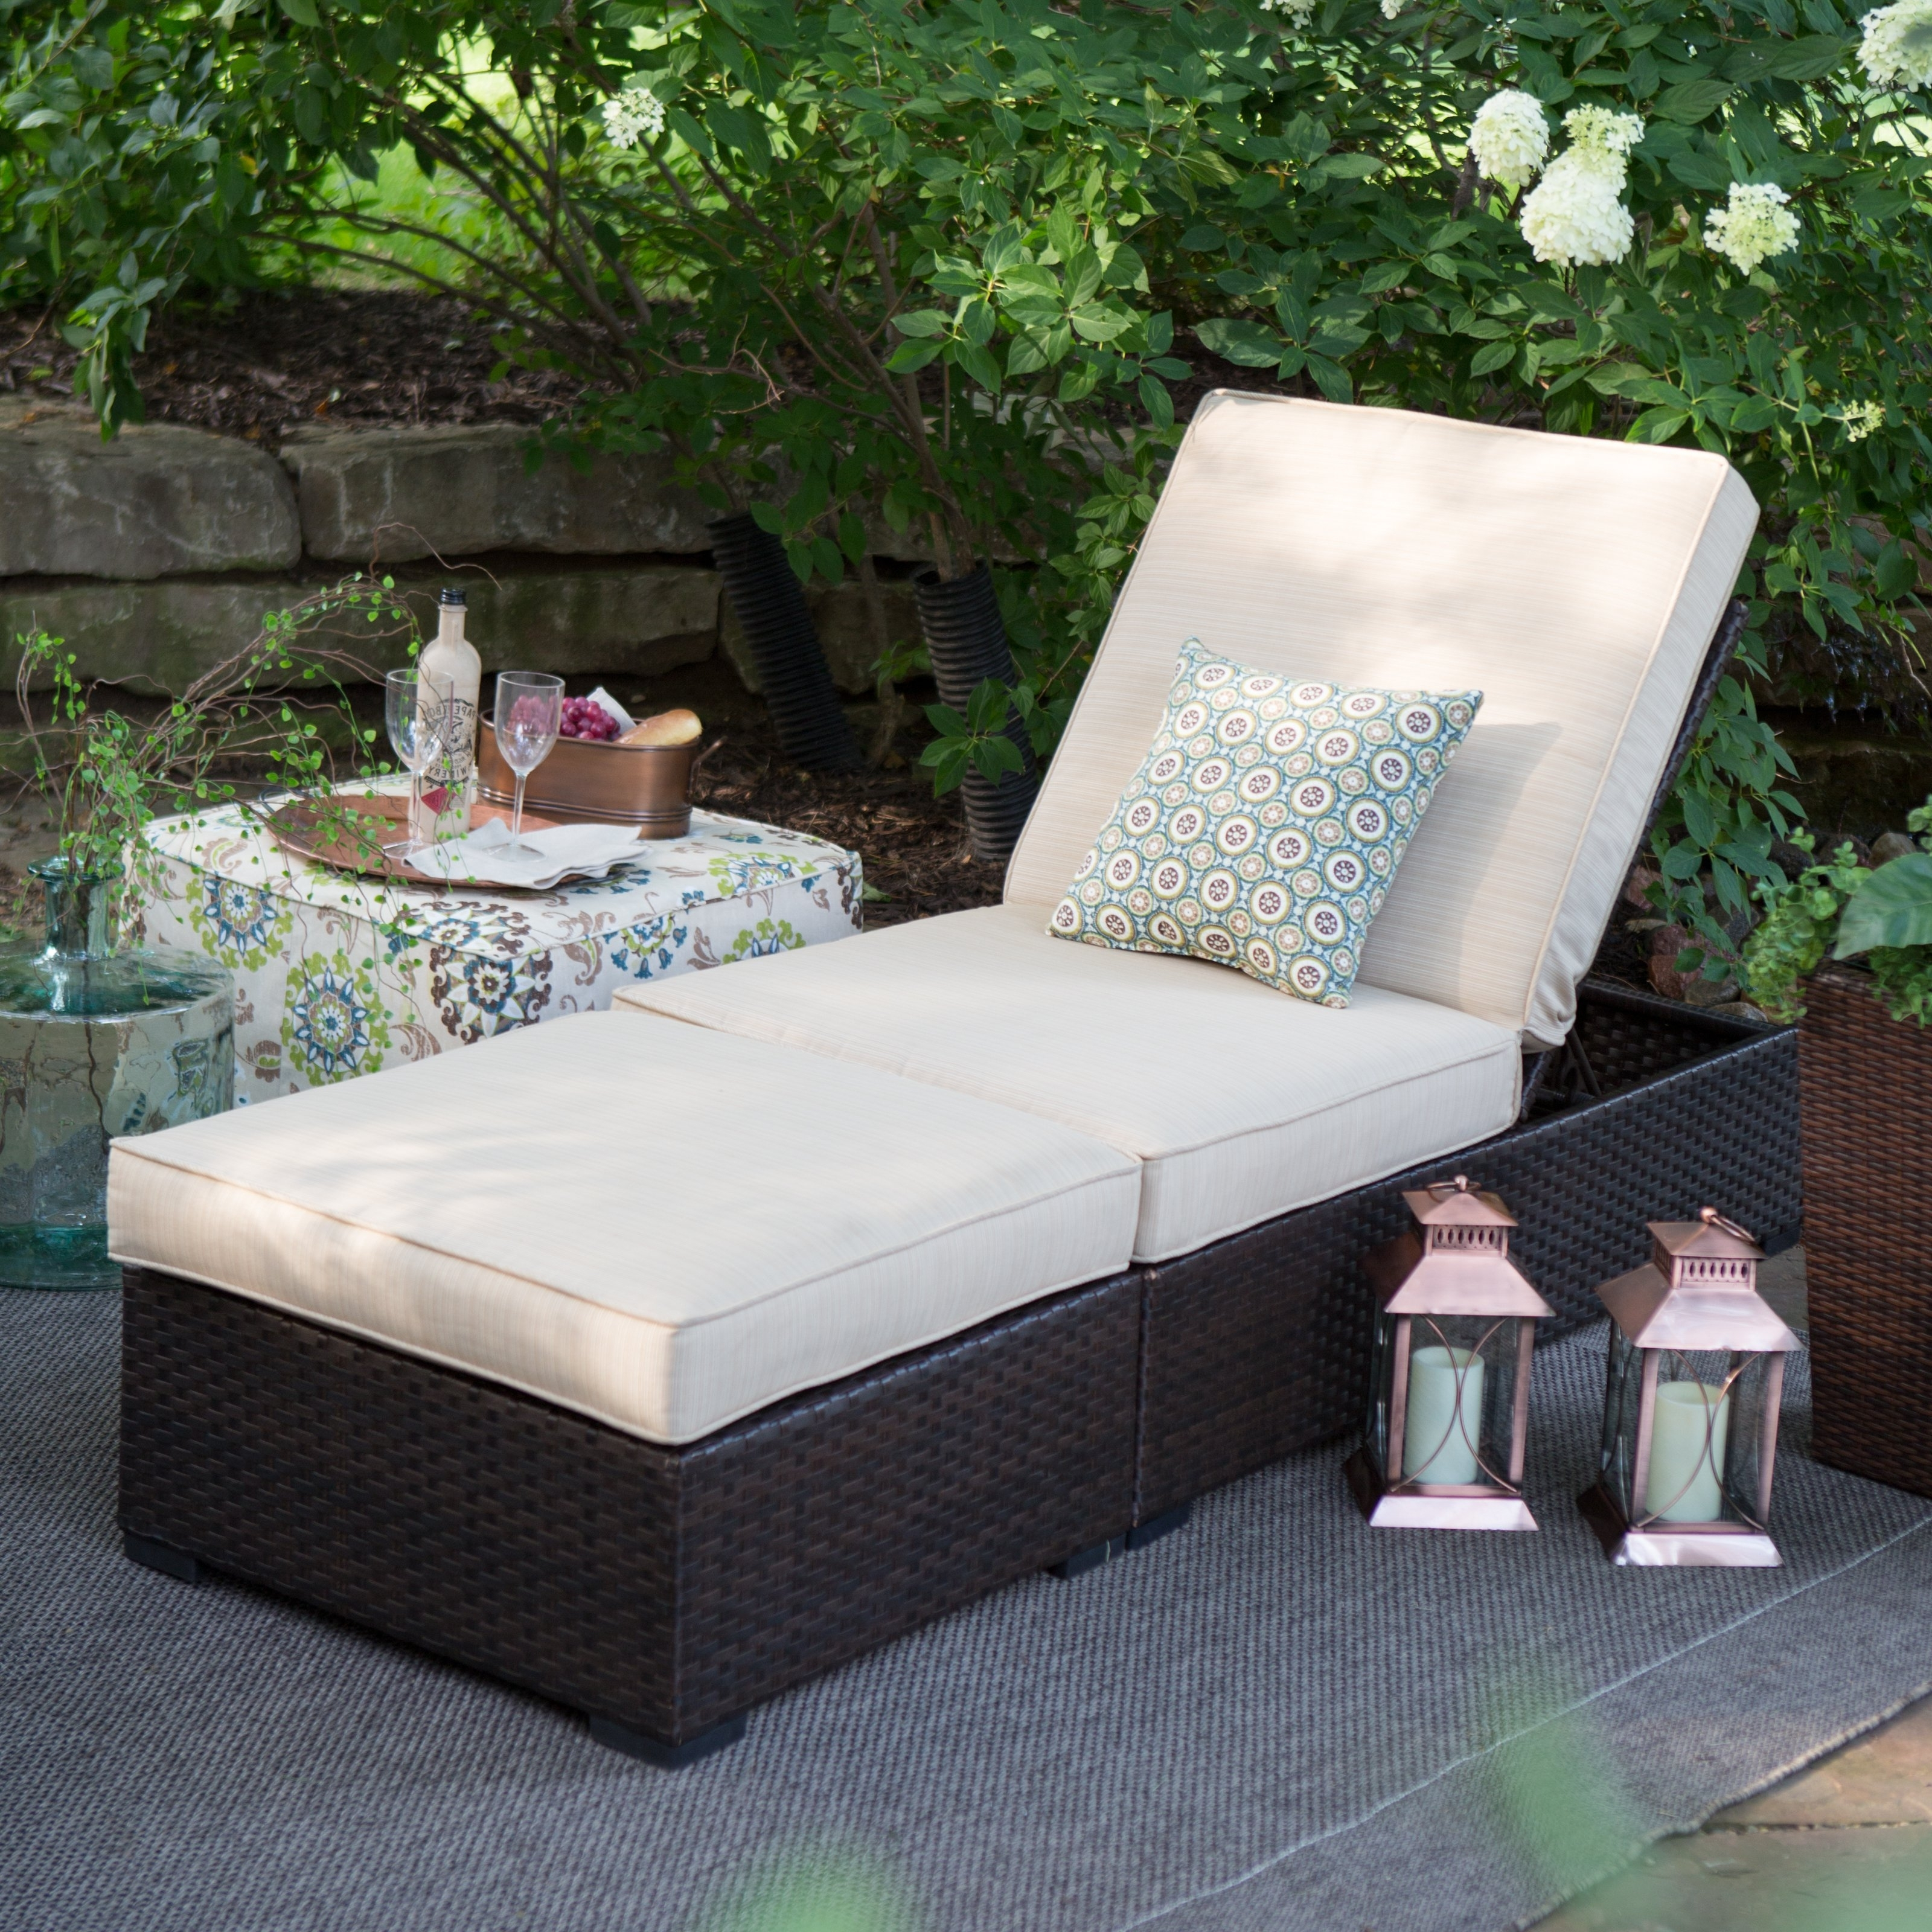 Widely Used Belham Living Marcella Wide Wicker Chaise Lounge With Ottoman Pertaining To Double Chaise Lounges For Outdoor (View 15 of 15)